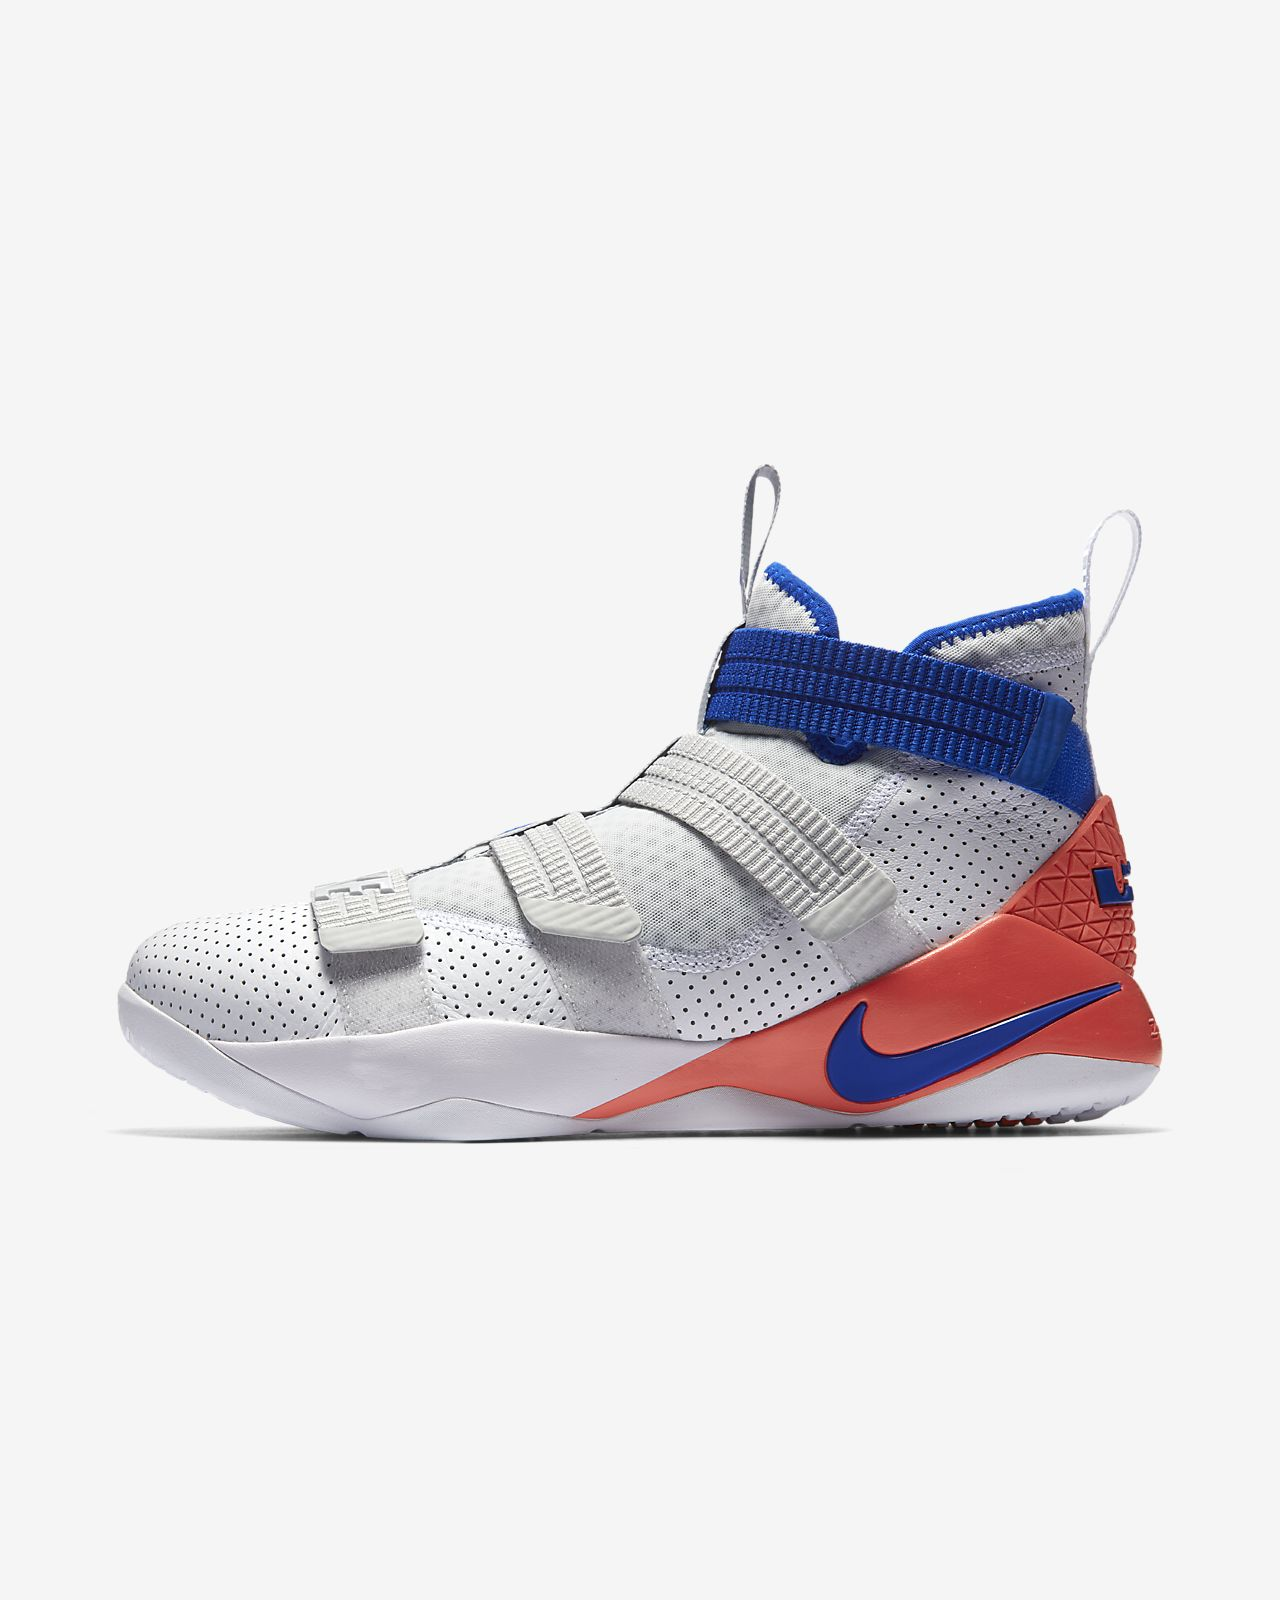 sneakers for cheap 89bb0 1a40a Großes Design Schuhe Nike Lebron The 11 11 Experience - sommerprogramme.de